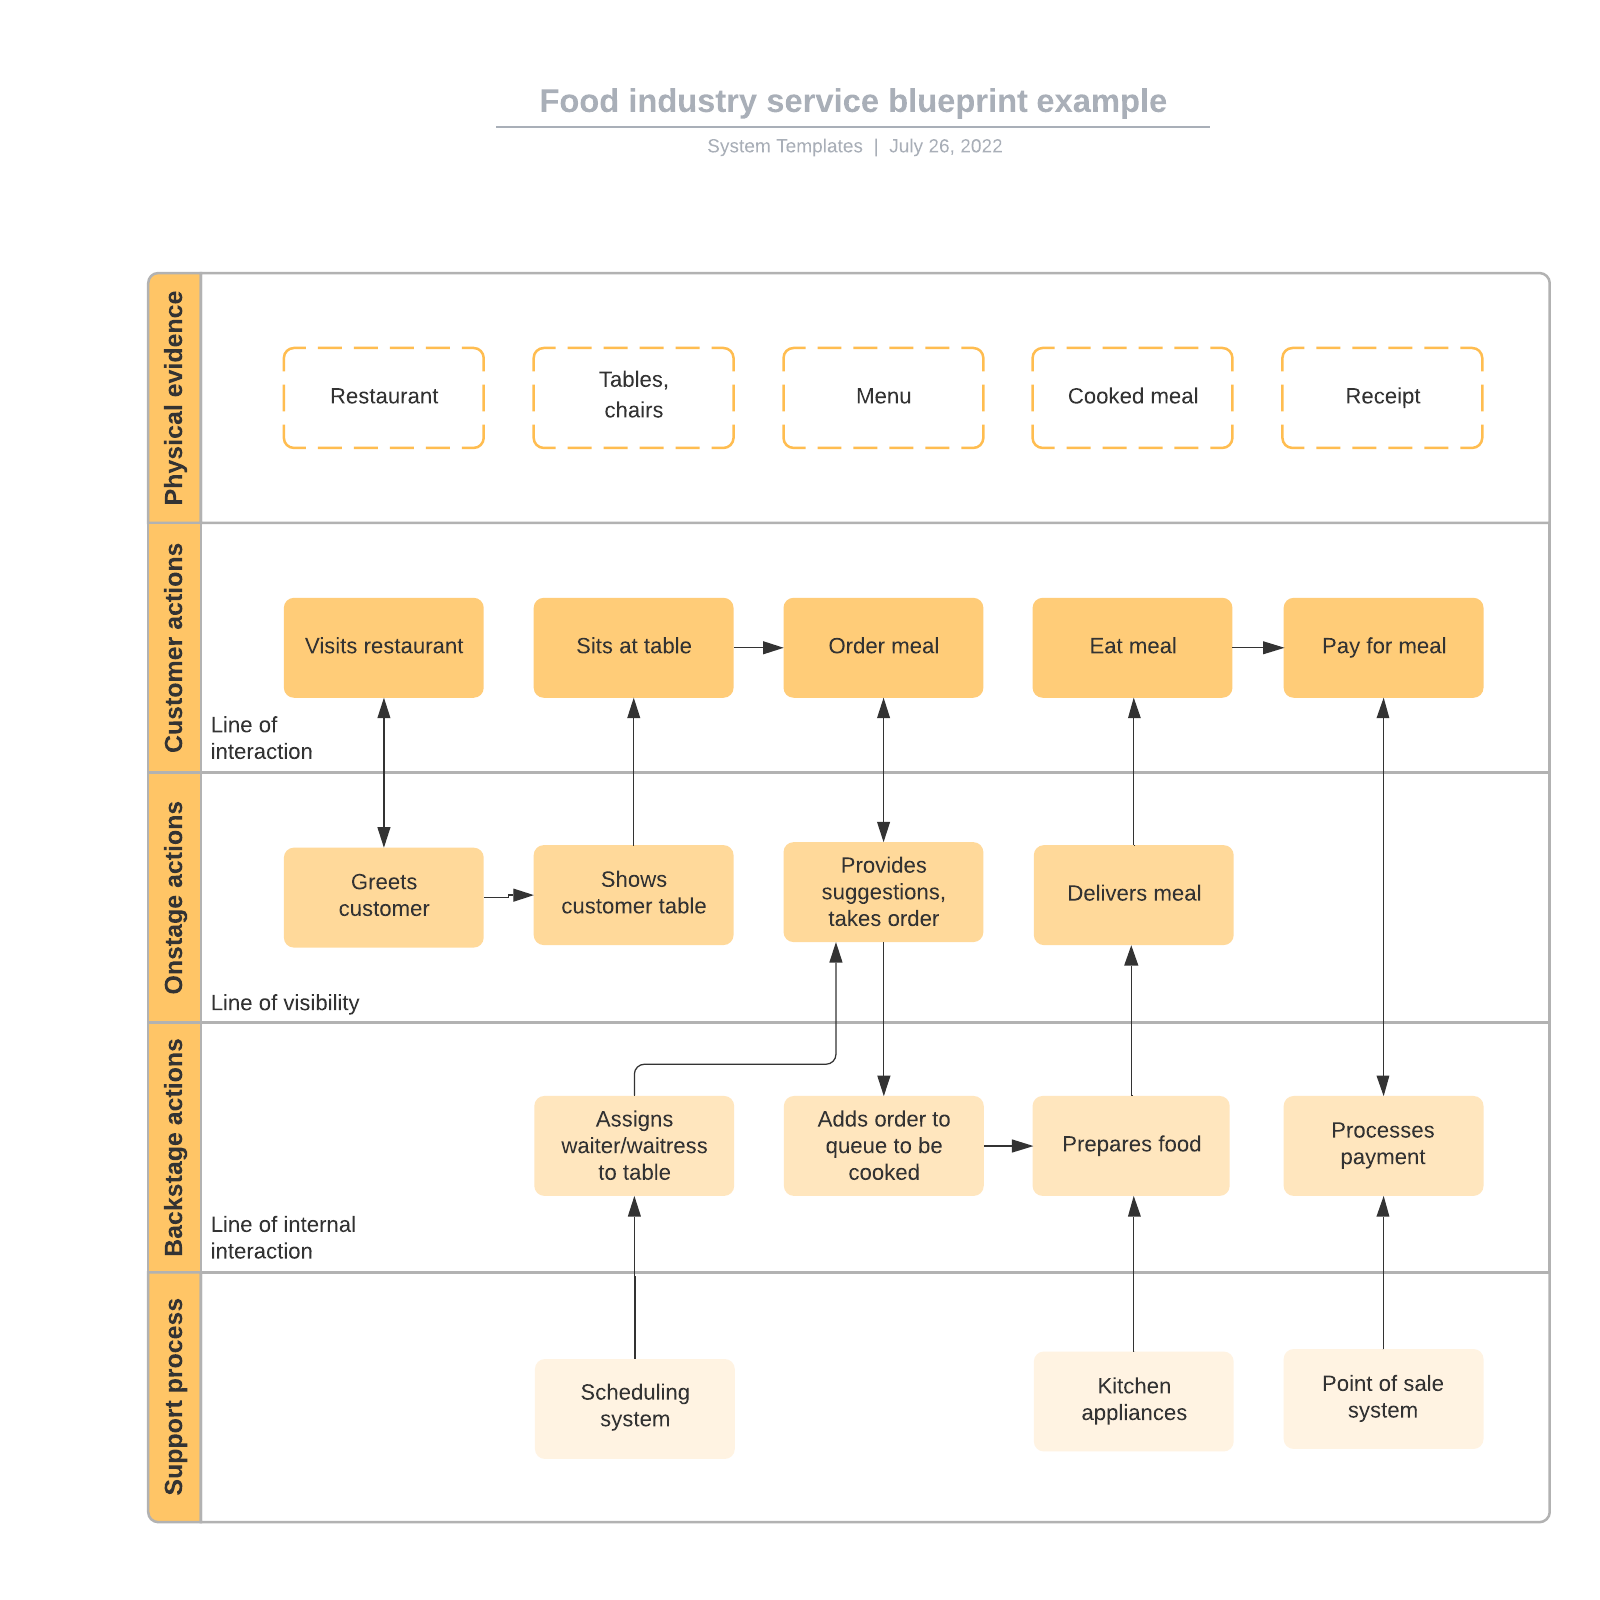 Food industry service blueprint example